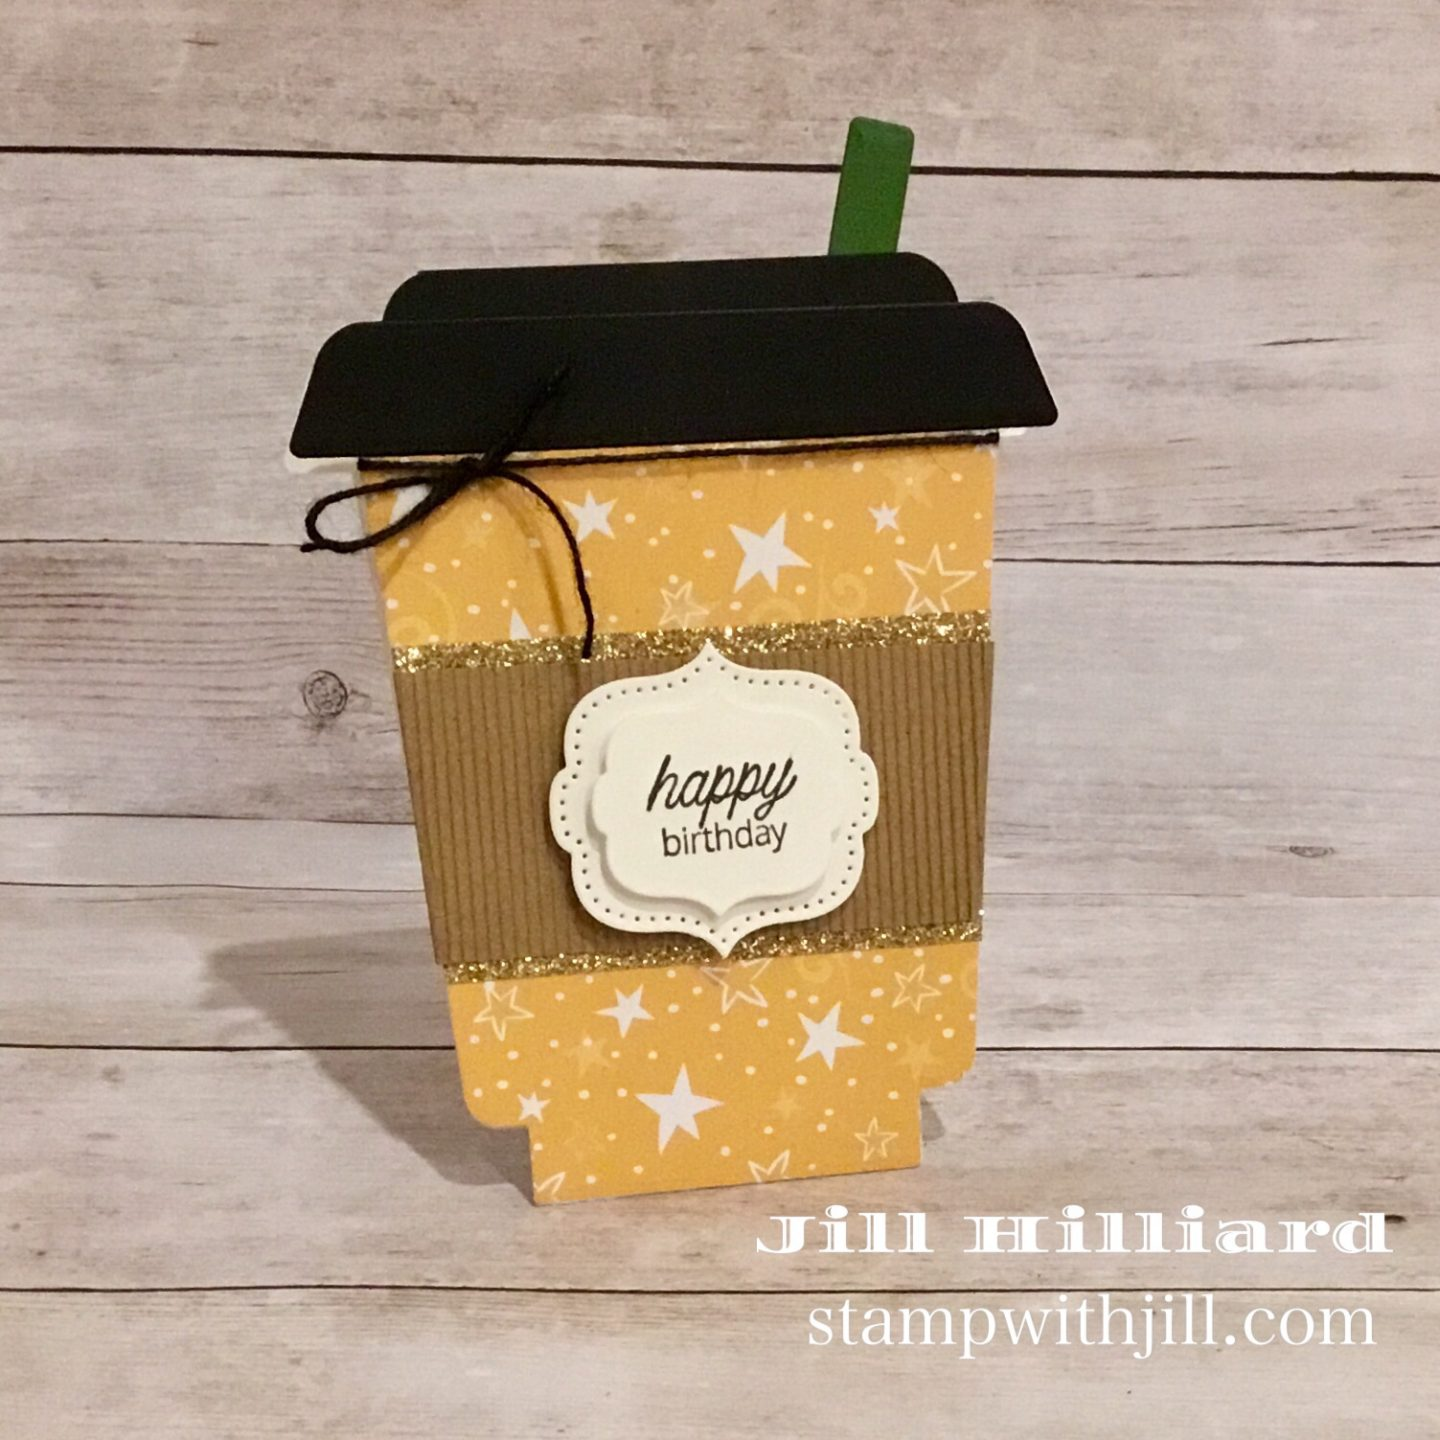 Stamp with Jill, Honeybee Stamps Frappe Shake Die coffee birthday cards